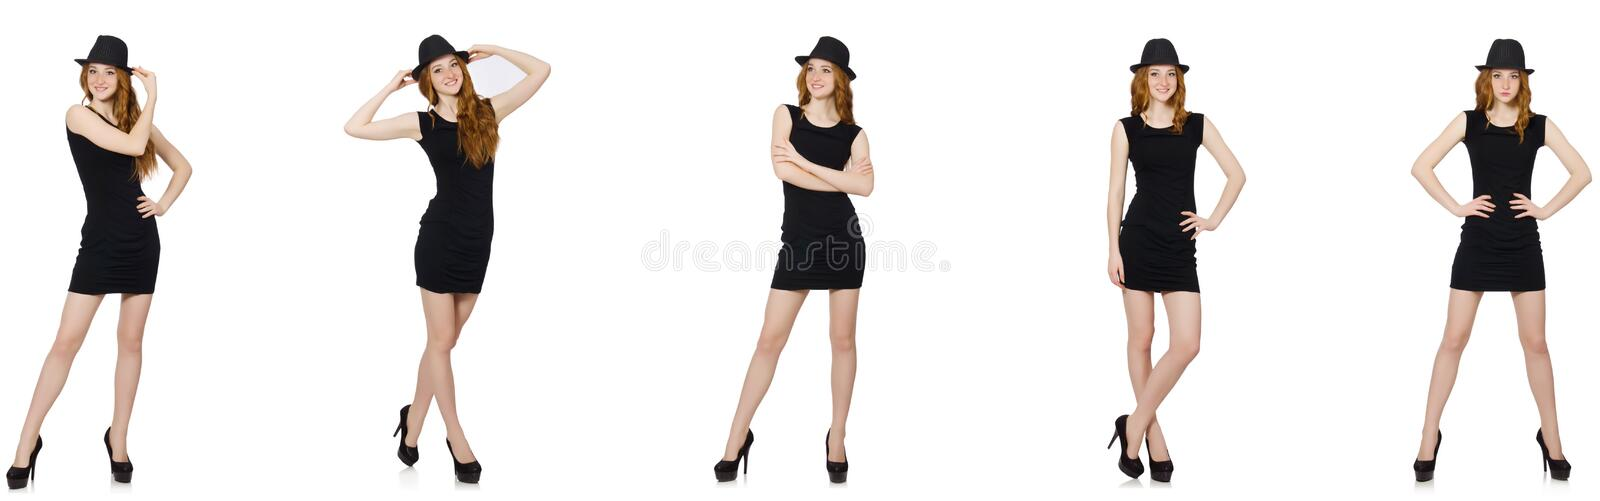 The young lady in black dress with black hat royalty free stock images